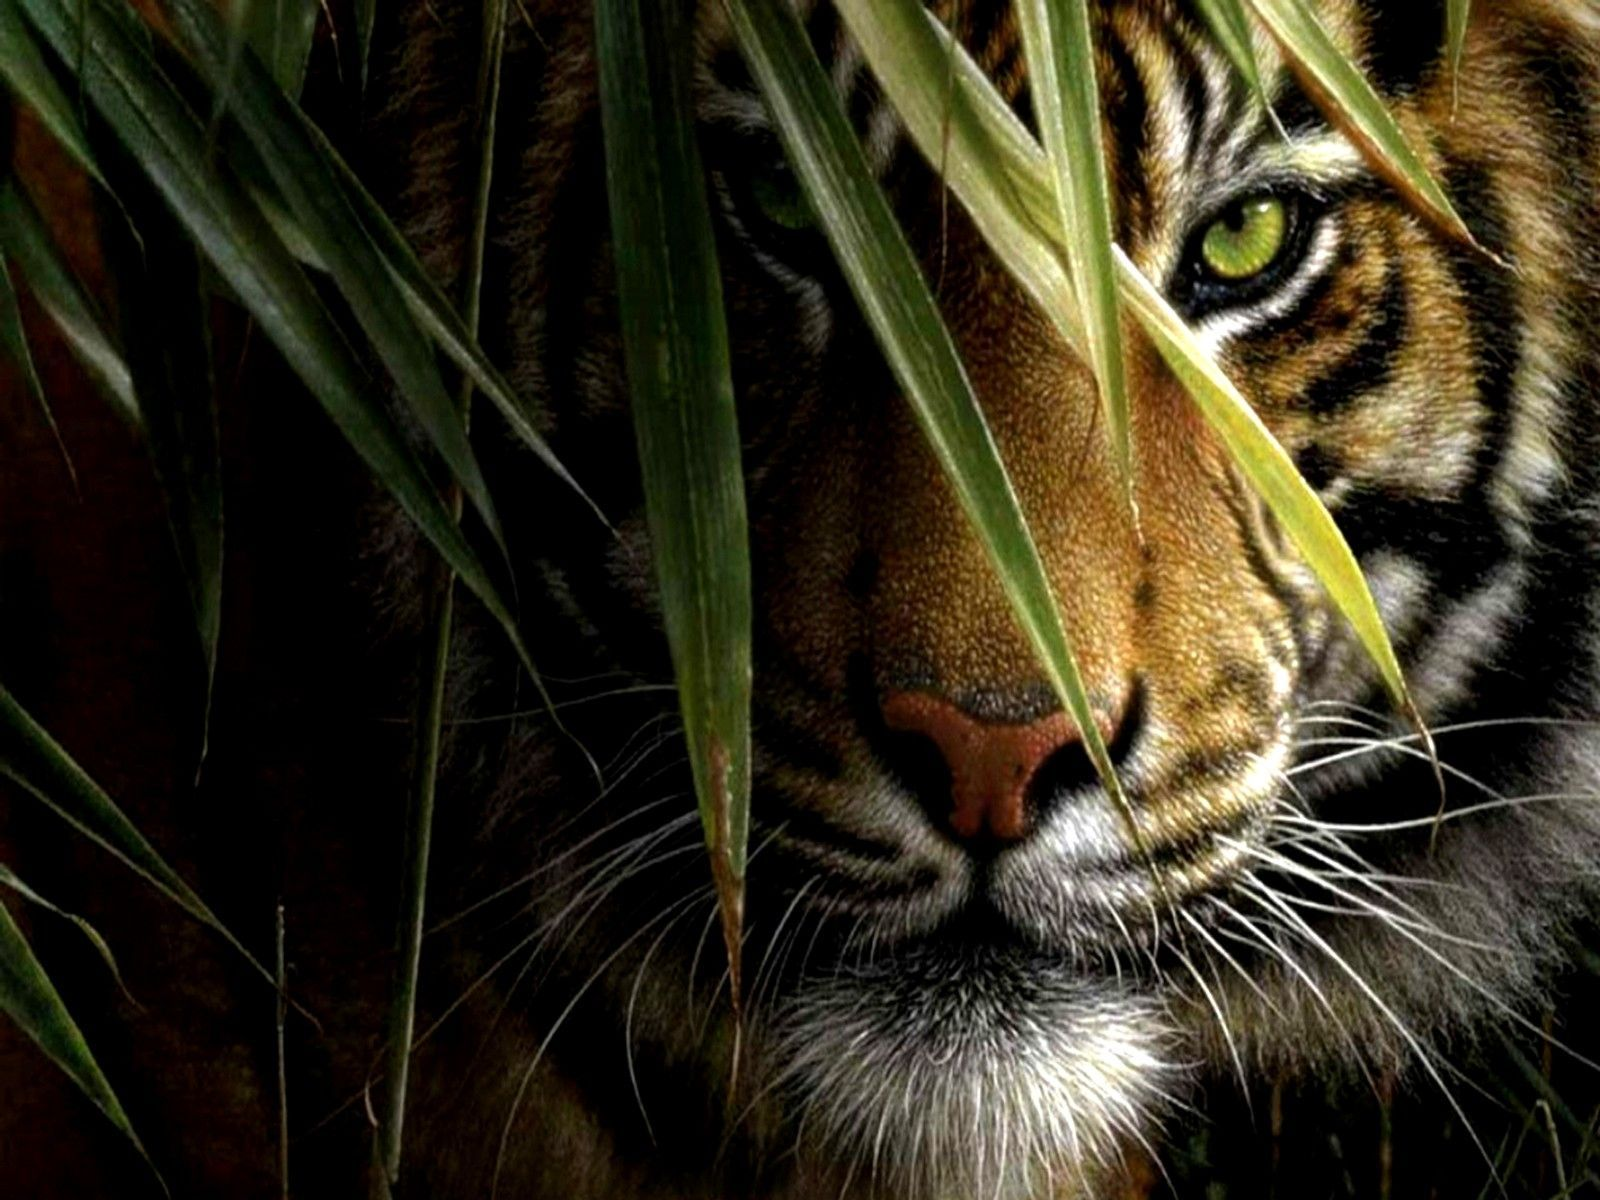 1080p Hd Nature Animals Wallpaper High Quality Desktop Iphone And Android Background And Wallpaper Anima Tiger Pictures Tiger Wallpaper Wildlife Paintings